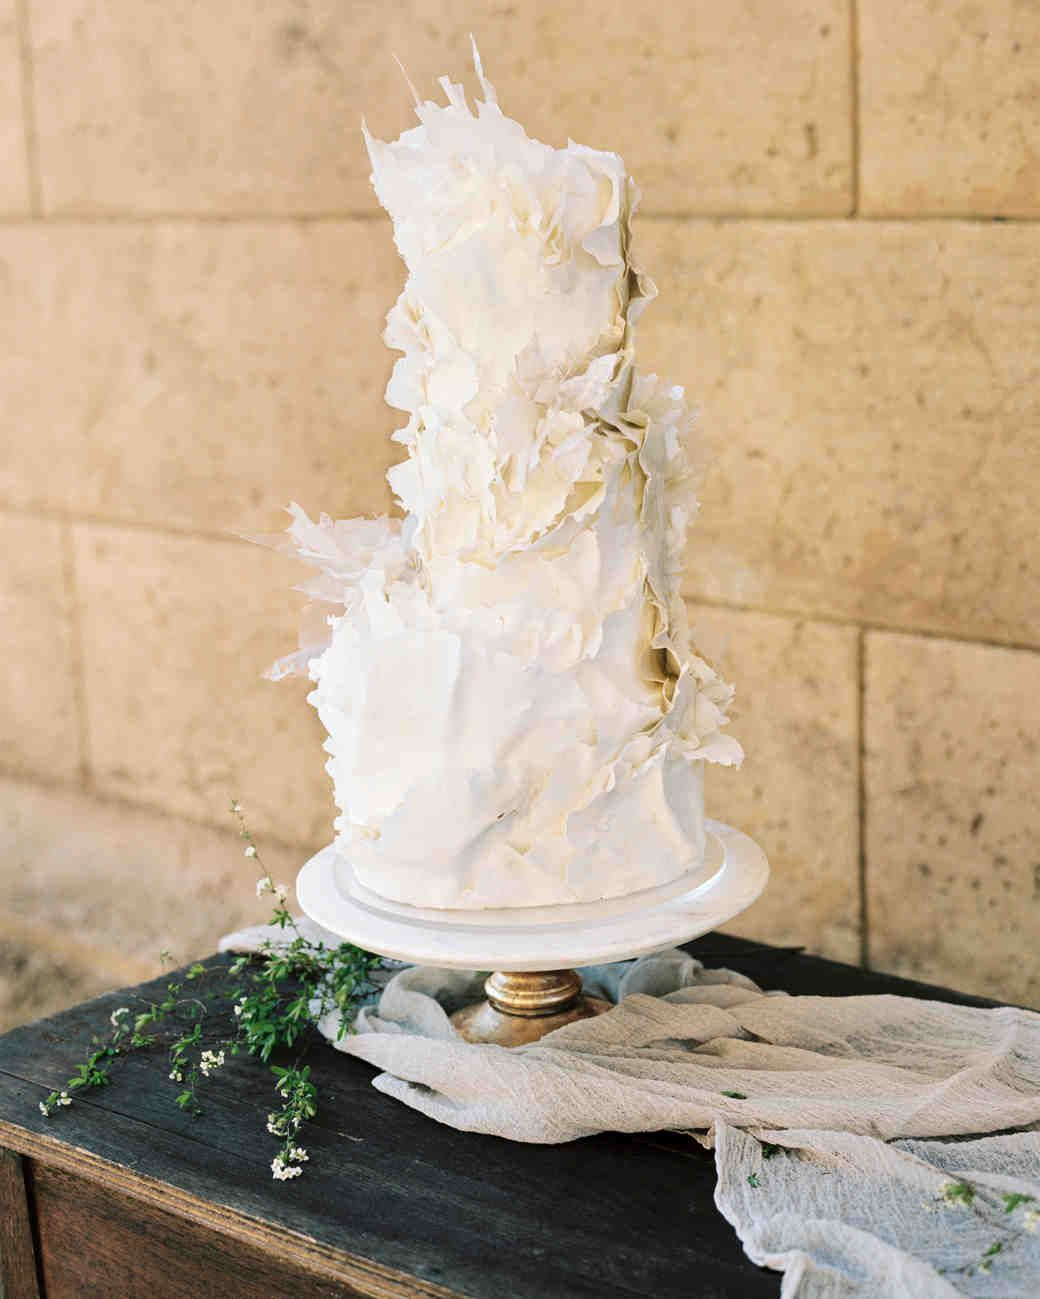 Vegan And Gluten Free Wedding Cake Ideas Alternative: Wedding Cake Designs, Wedding Cake